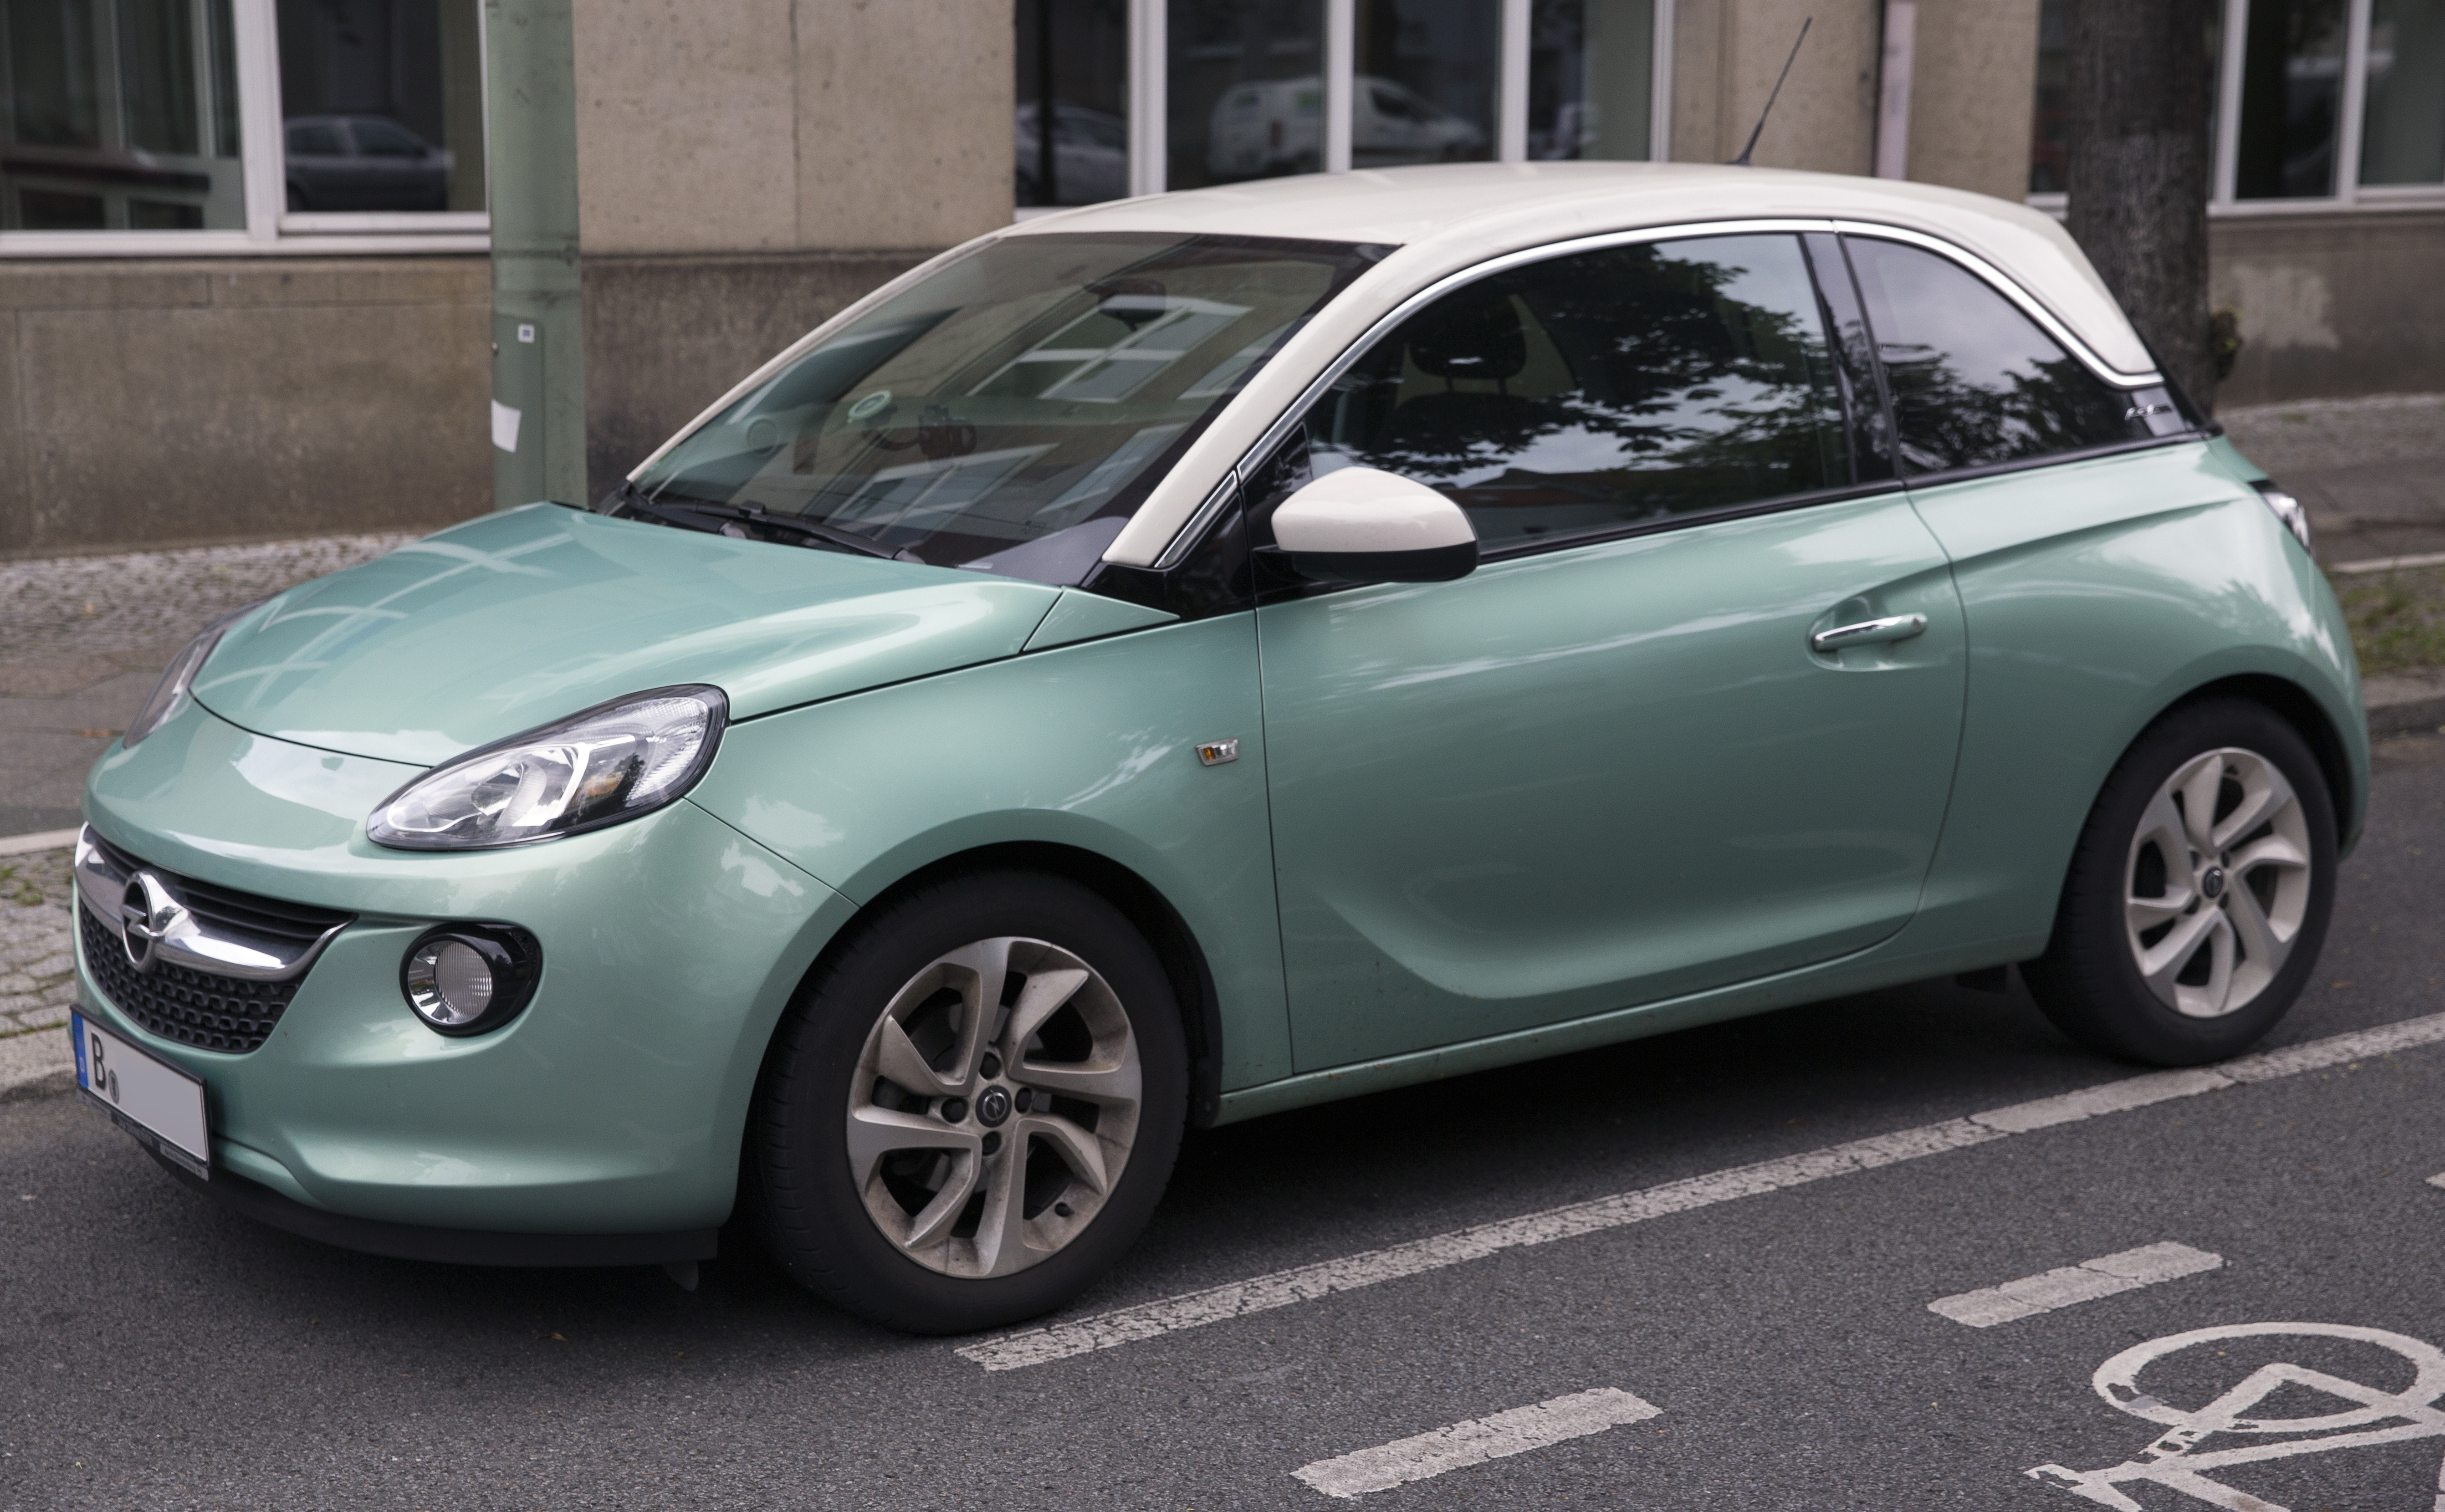 file 2016 opel adam in green front wikimedia commons. Black Bedroom Furniture Sets. Home Design Ideas